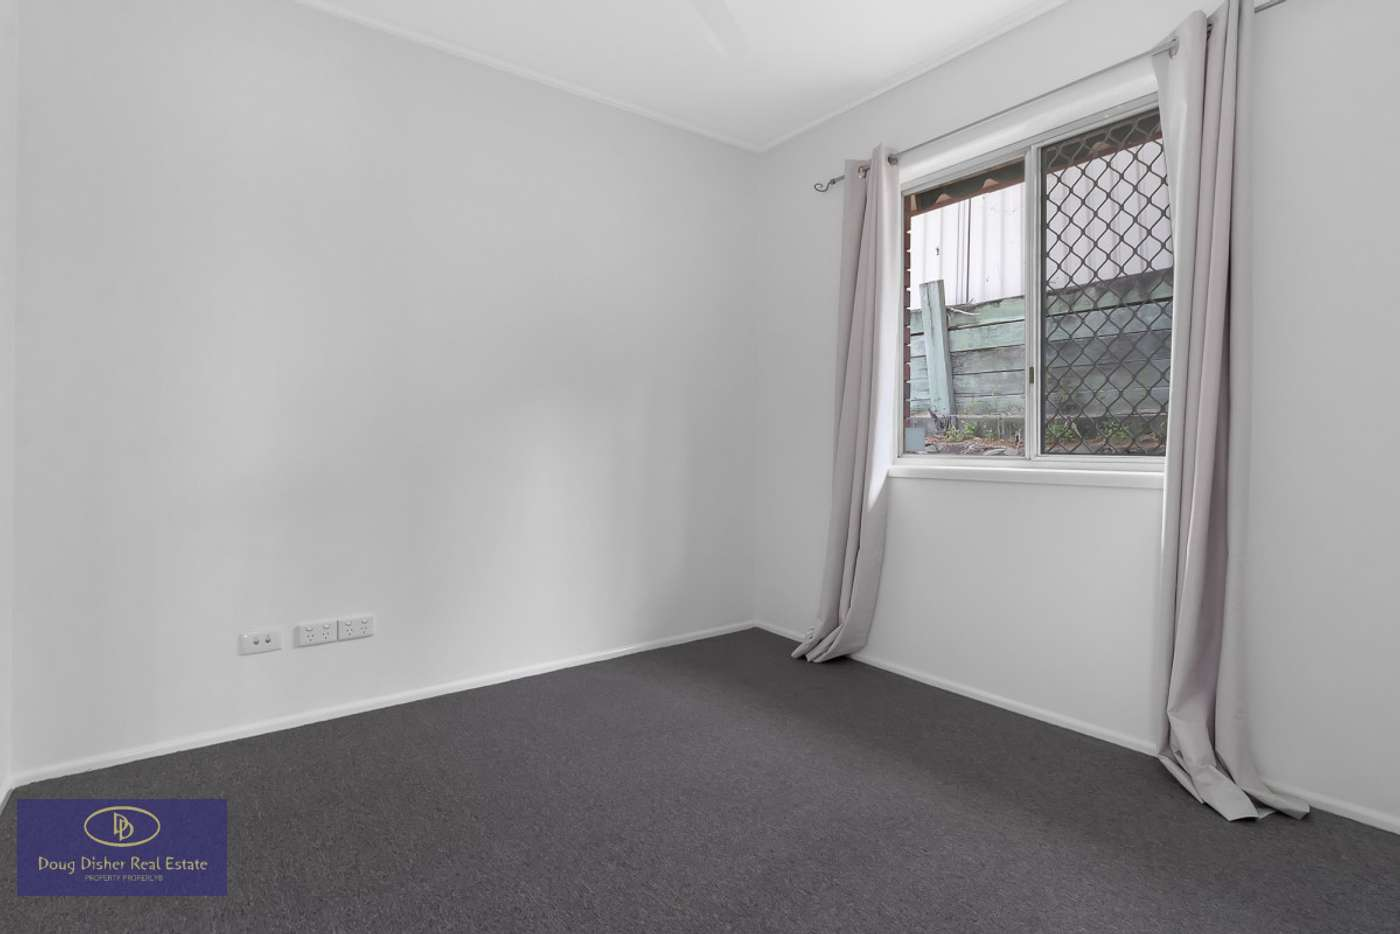 Sixth view of Homely house listing, 36 Woggle Street, Jamboree Heights QLD 4074